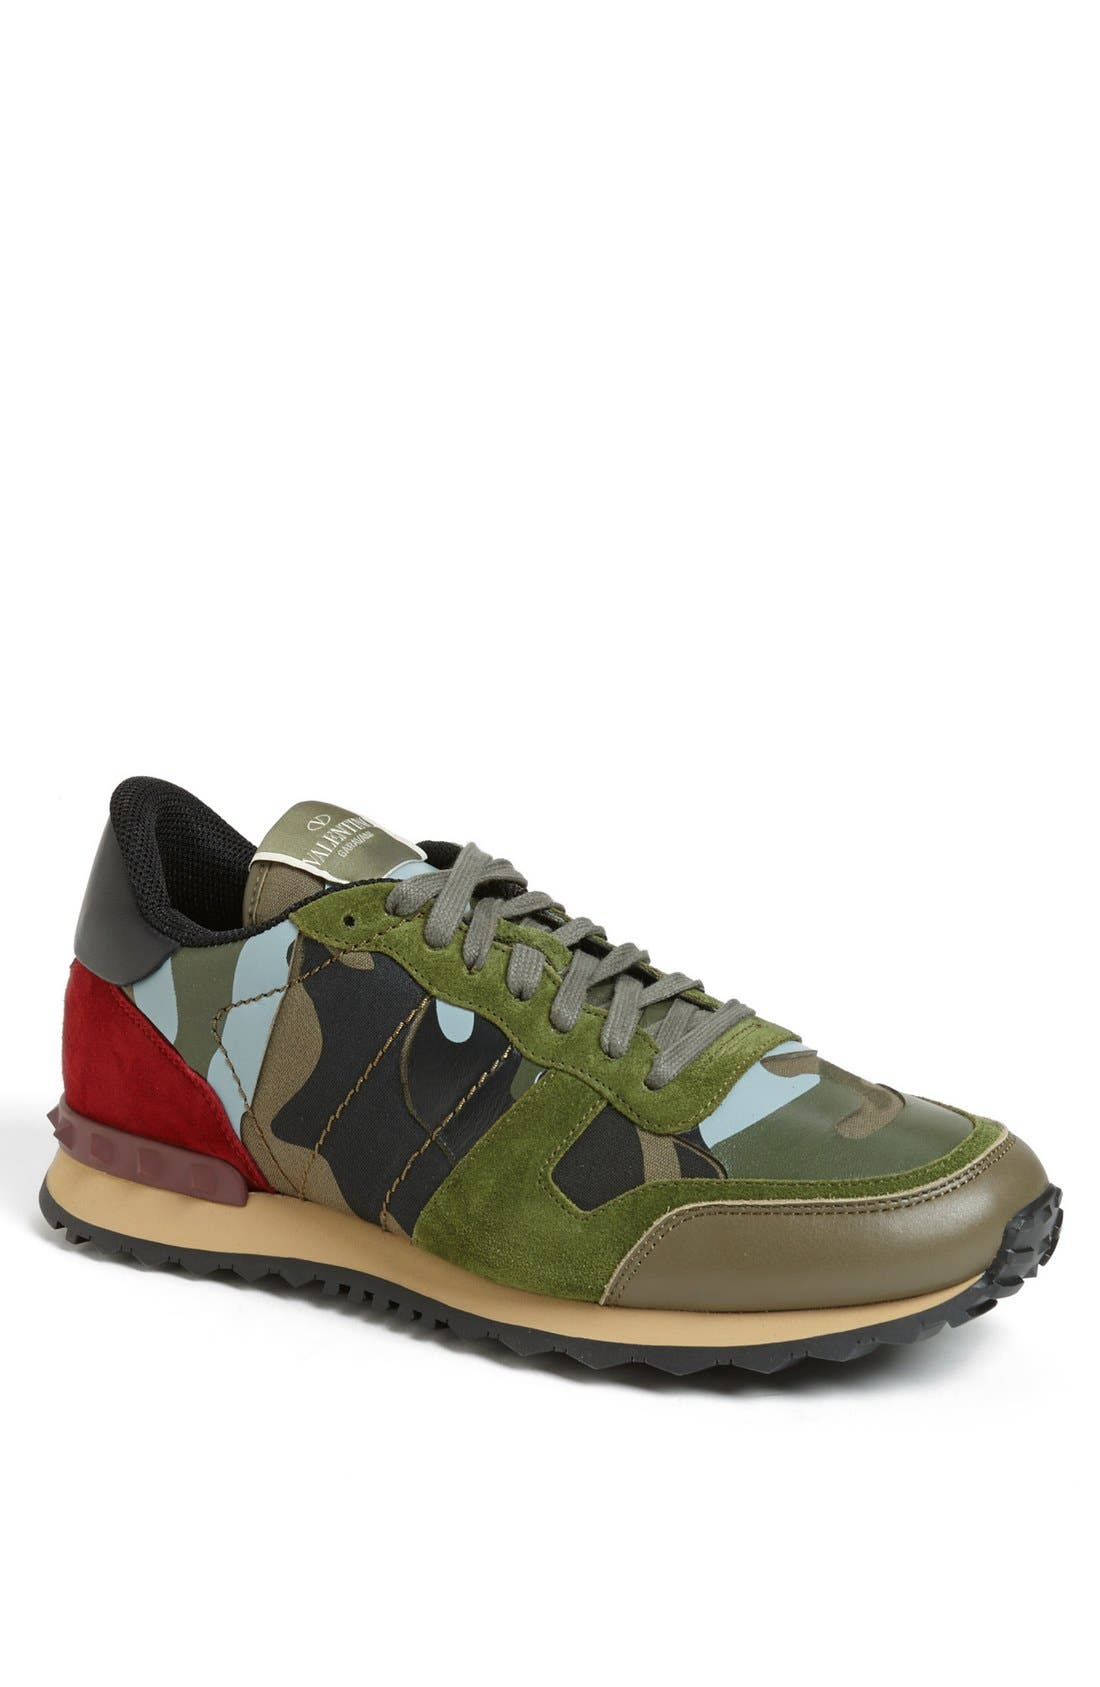 Camouflage Sneaker,                         Main,                         color, Army Green